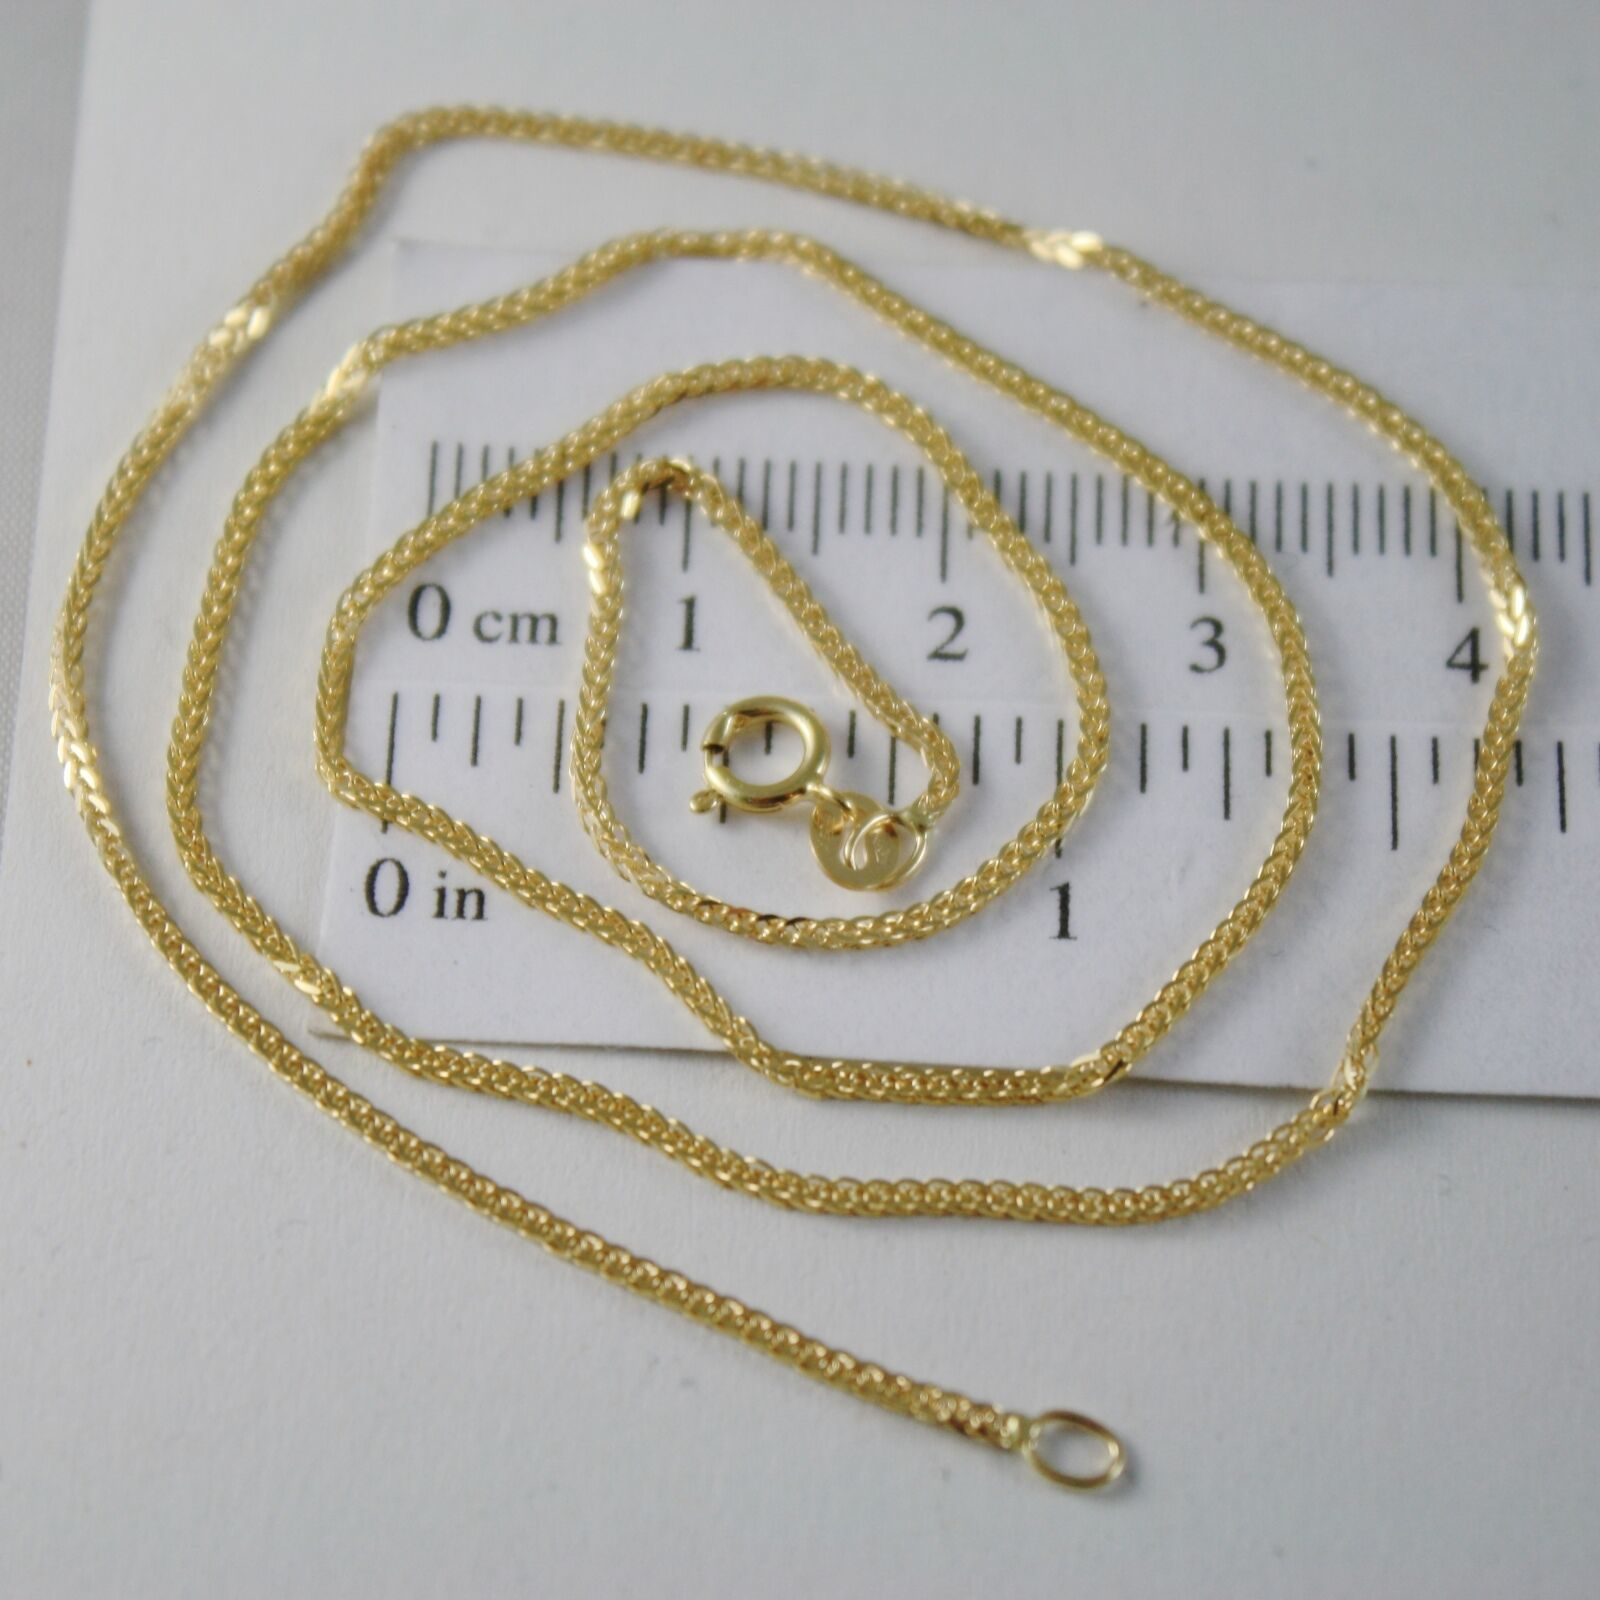 SOLID 18K YELLOW GOLD CHAIN NECKLACE WITH EAR LINK, 15.75 IN. MADE IN ITALY